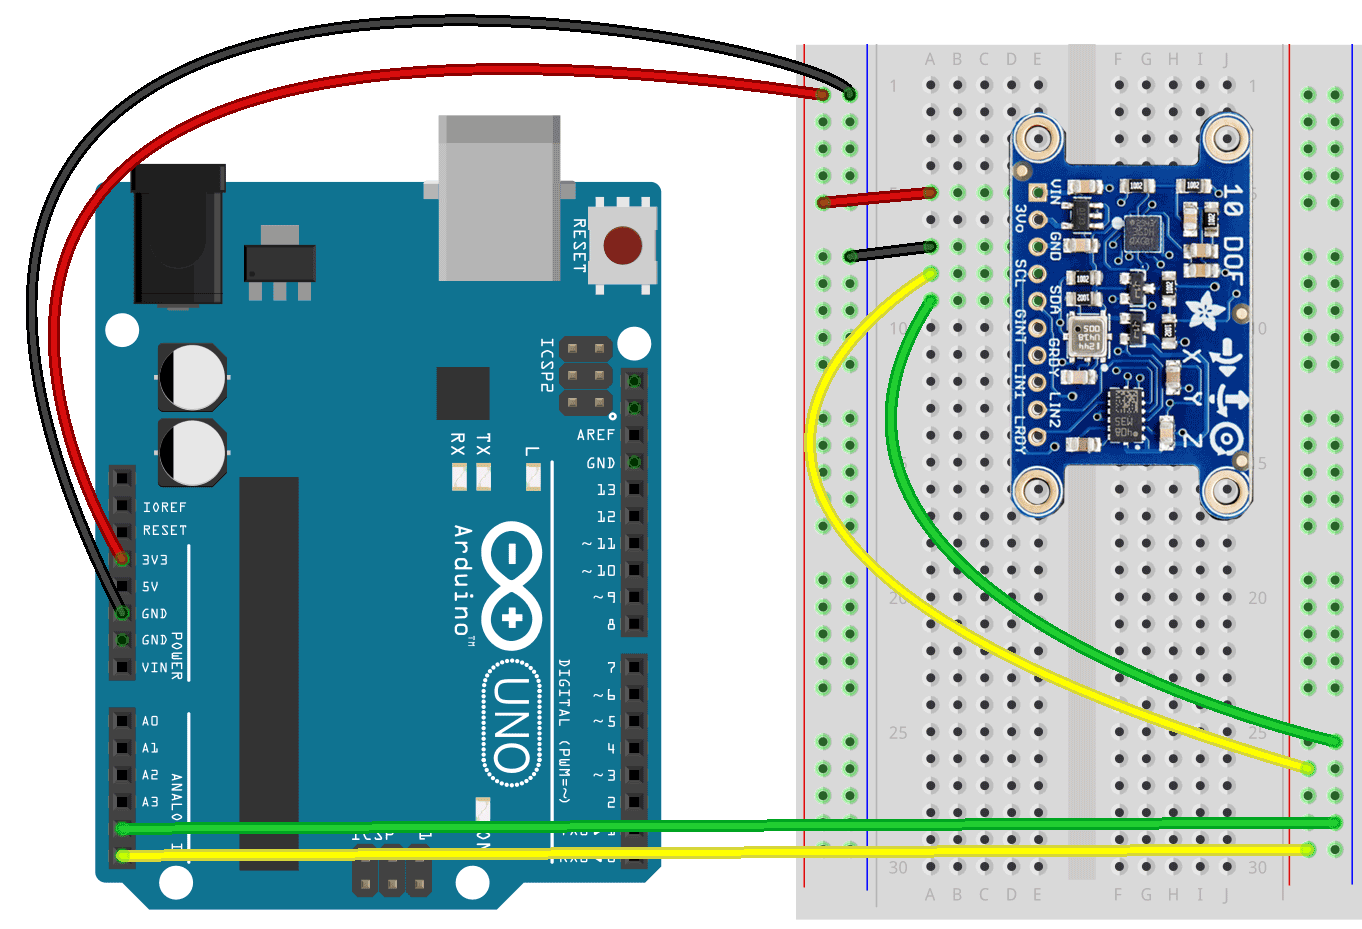 Because Learning Accelerometer Sensor Schematic Diagram This Board Has The Gyroscope Magnetometer And Barometric Pressure Sensors On It